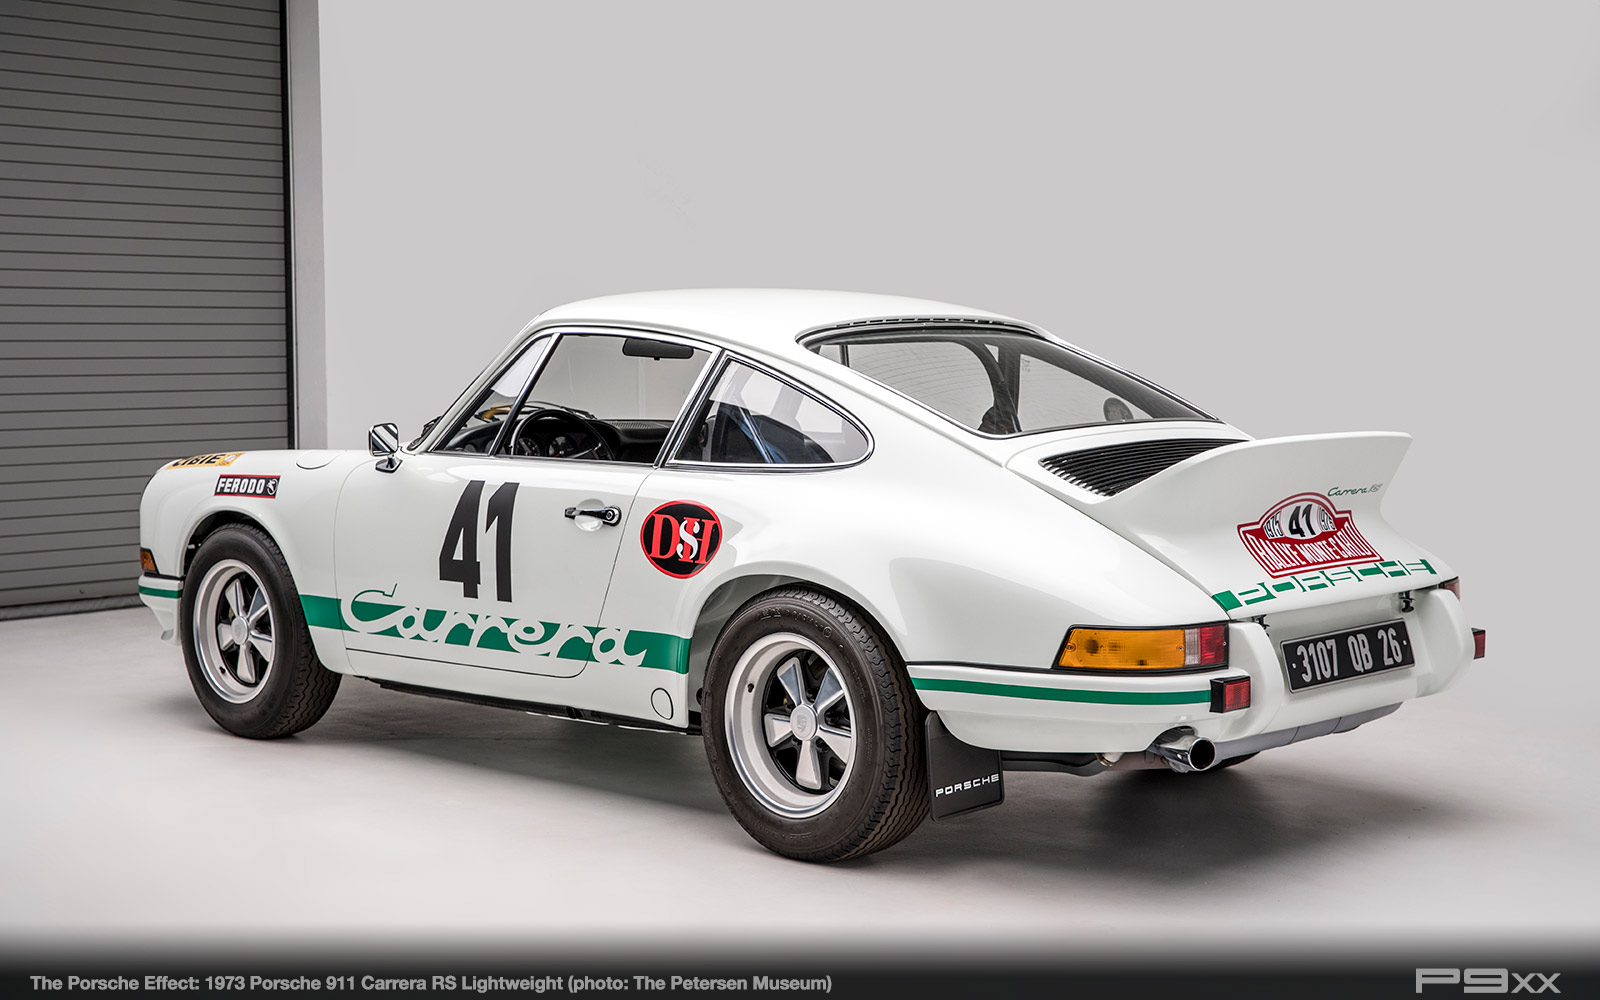 1973-911-Carrera-RS-Lightweight-Petersen-Automotive-Museum-The-Porsche-Effect-375